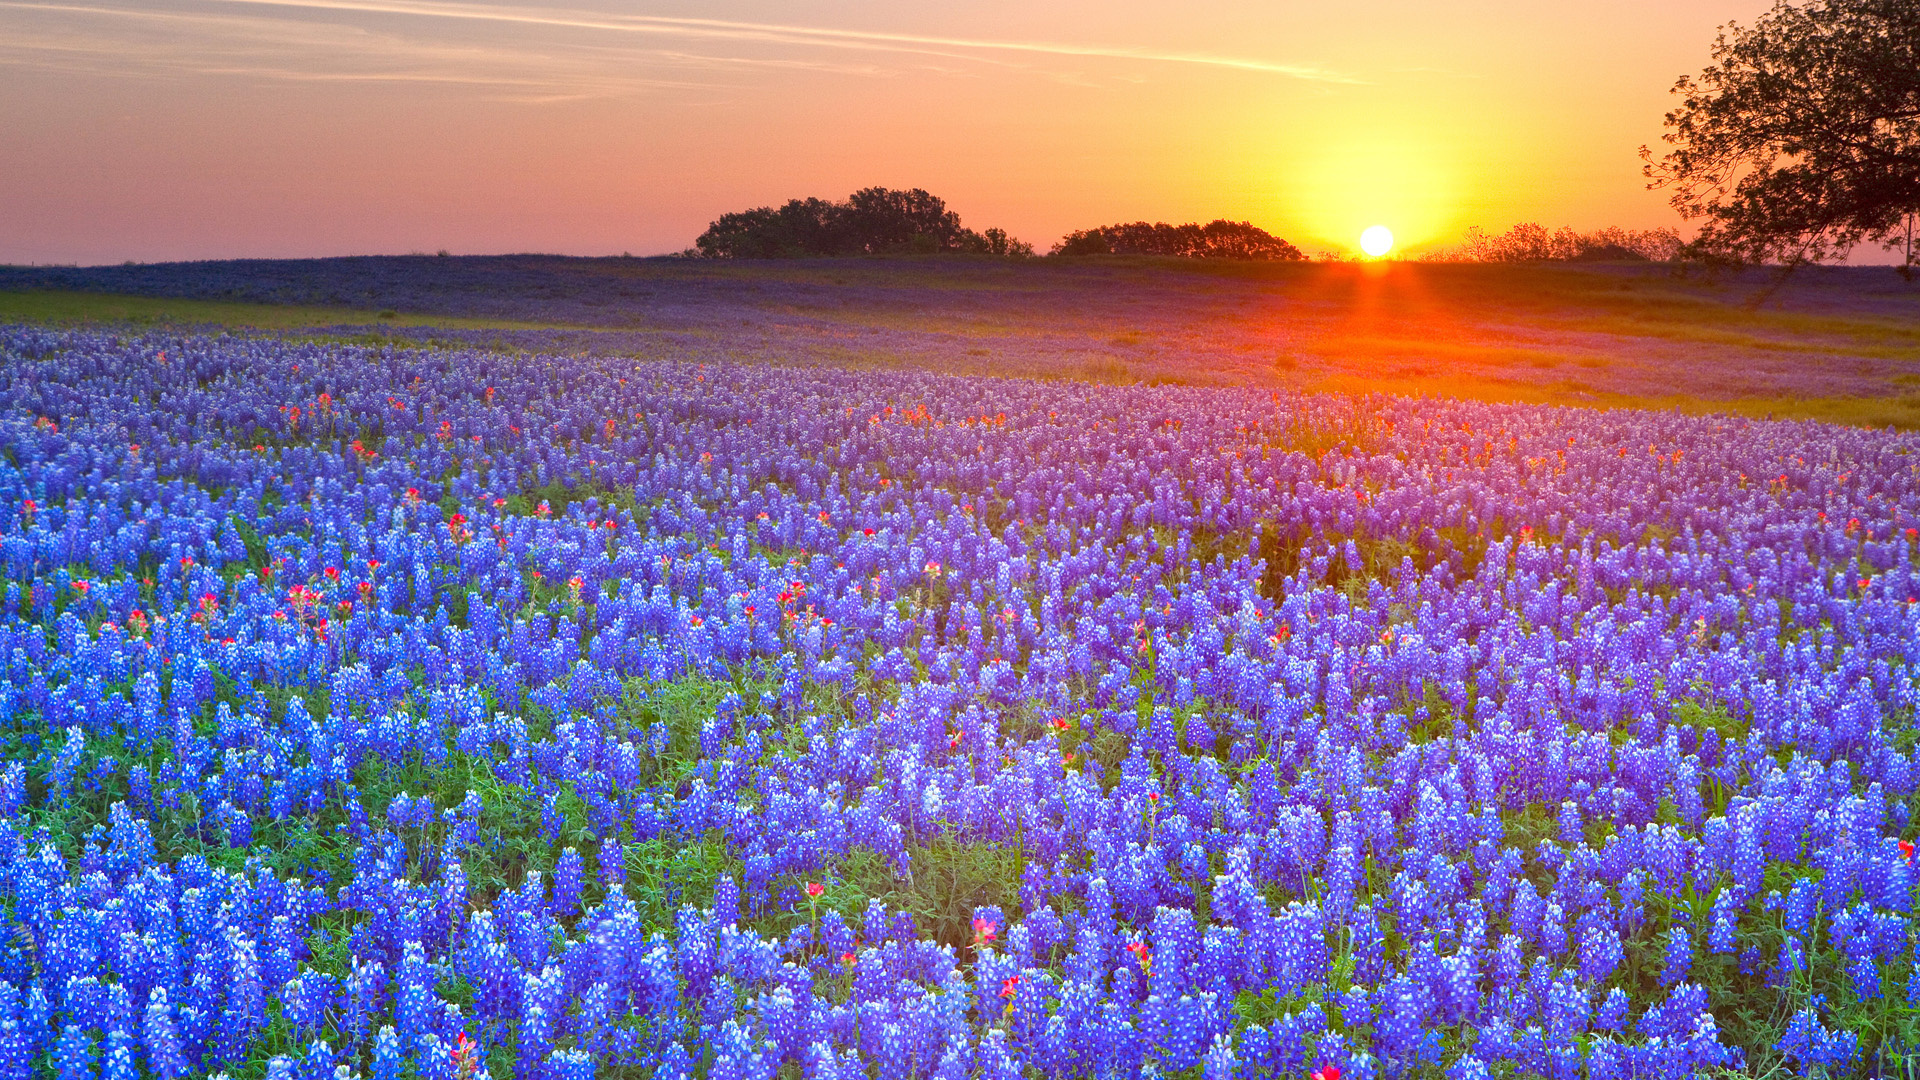 Texas Scenery Wallpaper